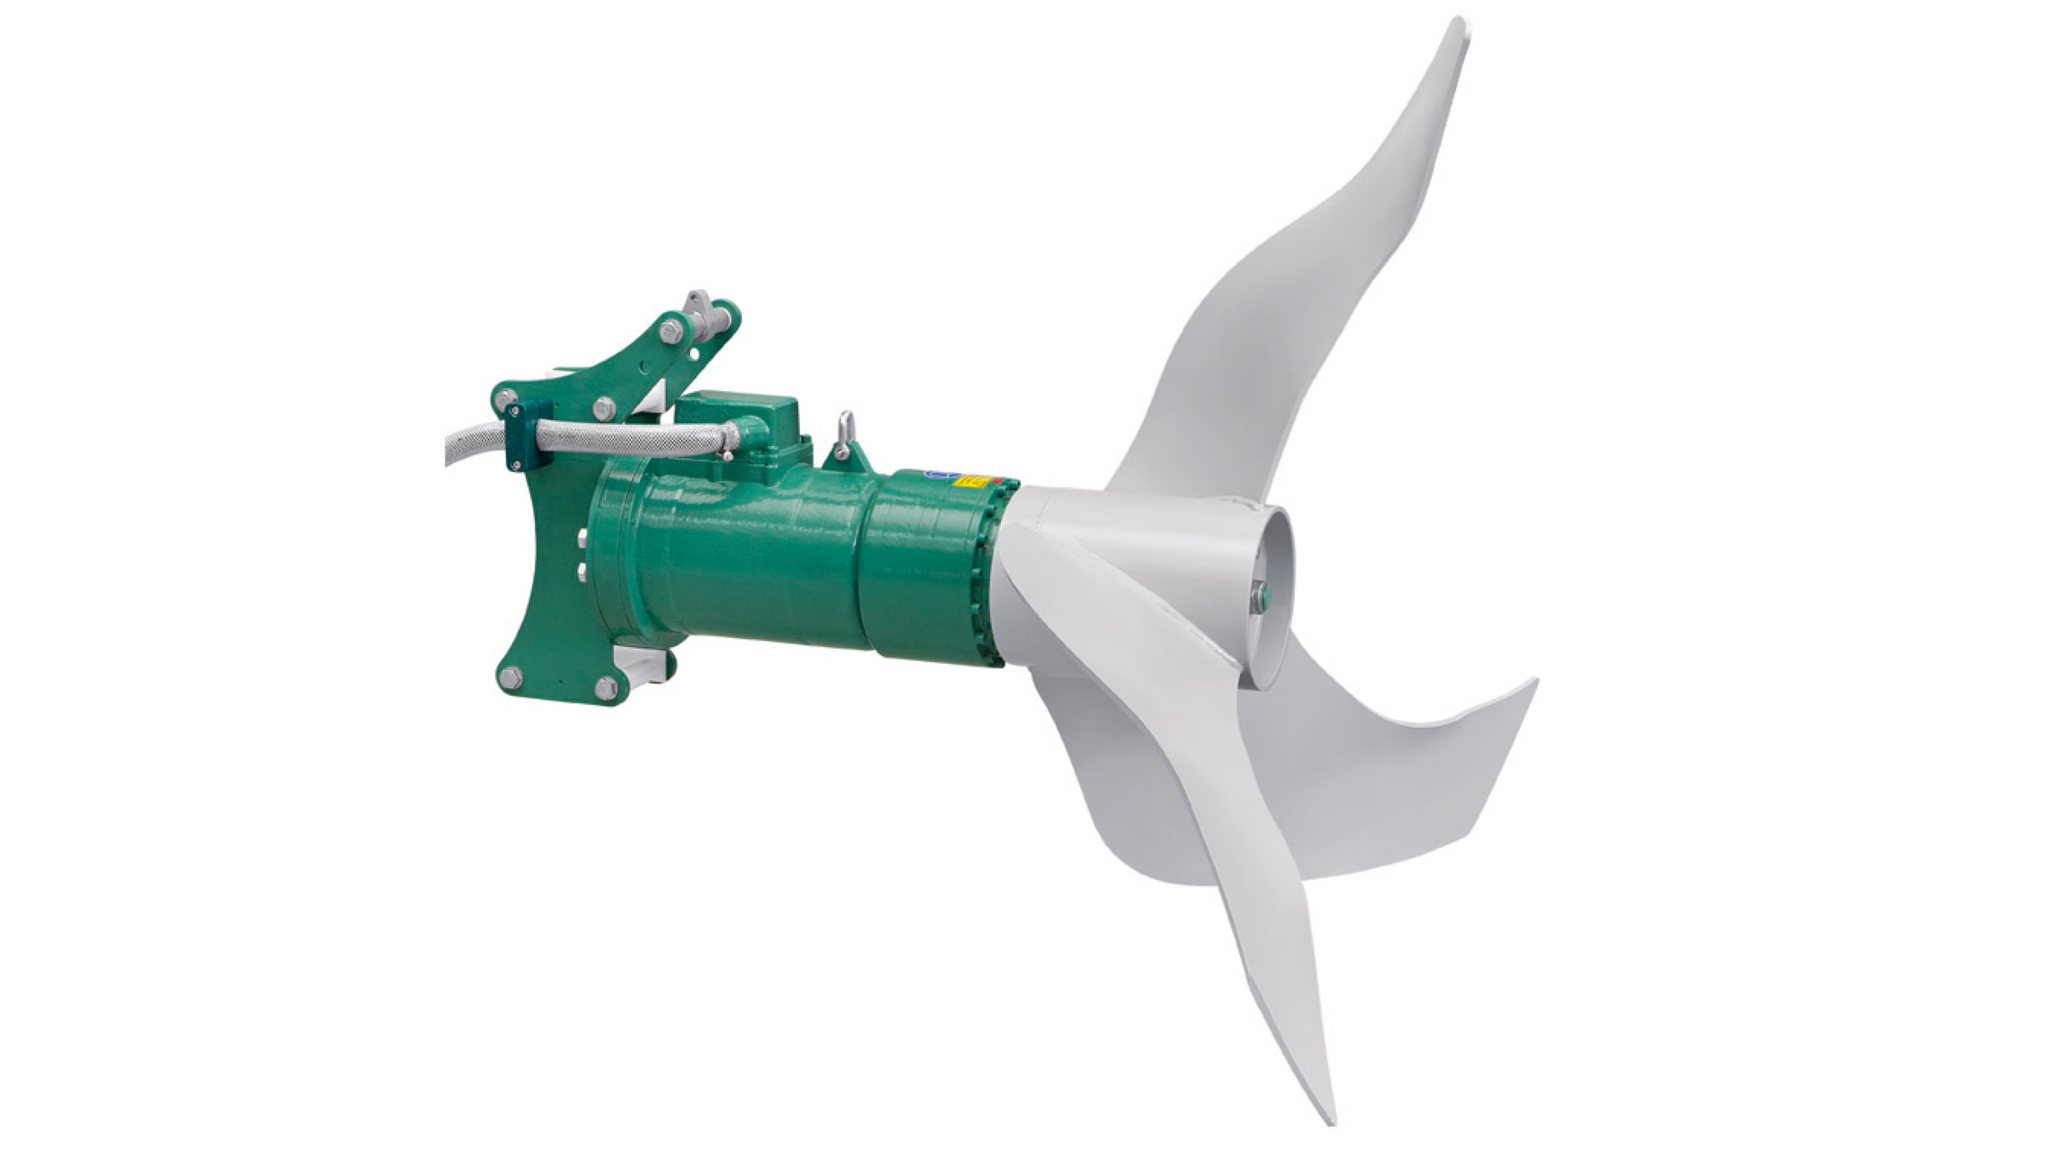 Gallery image 3 - OPTIMIX 2G 90-75 *  Submersible motor * For dry matter content up to 12 % * Rated power 5.5 / 9.0 kW * Propeller speed 75 rpm * Propeller Ø 1,400 mm * Slow propeller speed and greater propeller diameter for flow preservation